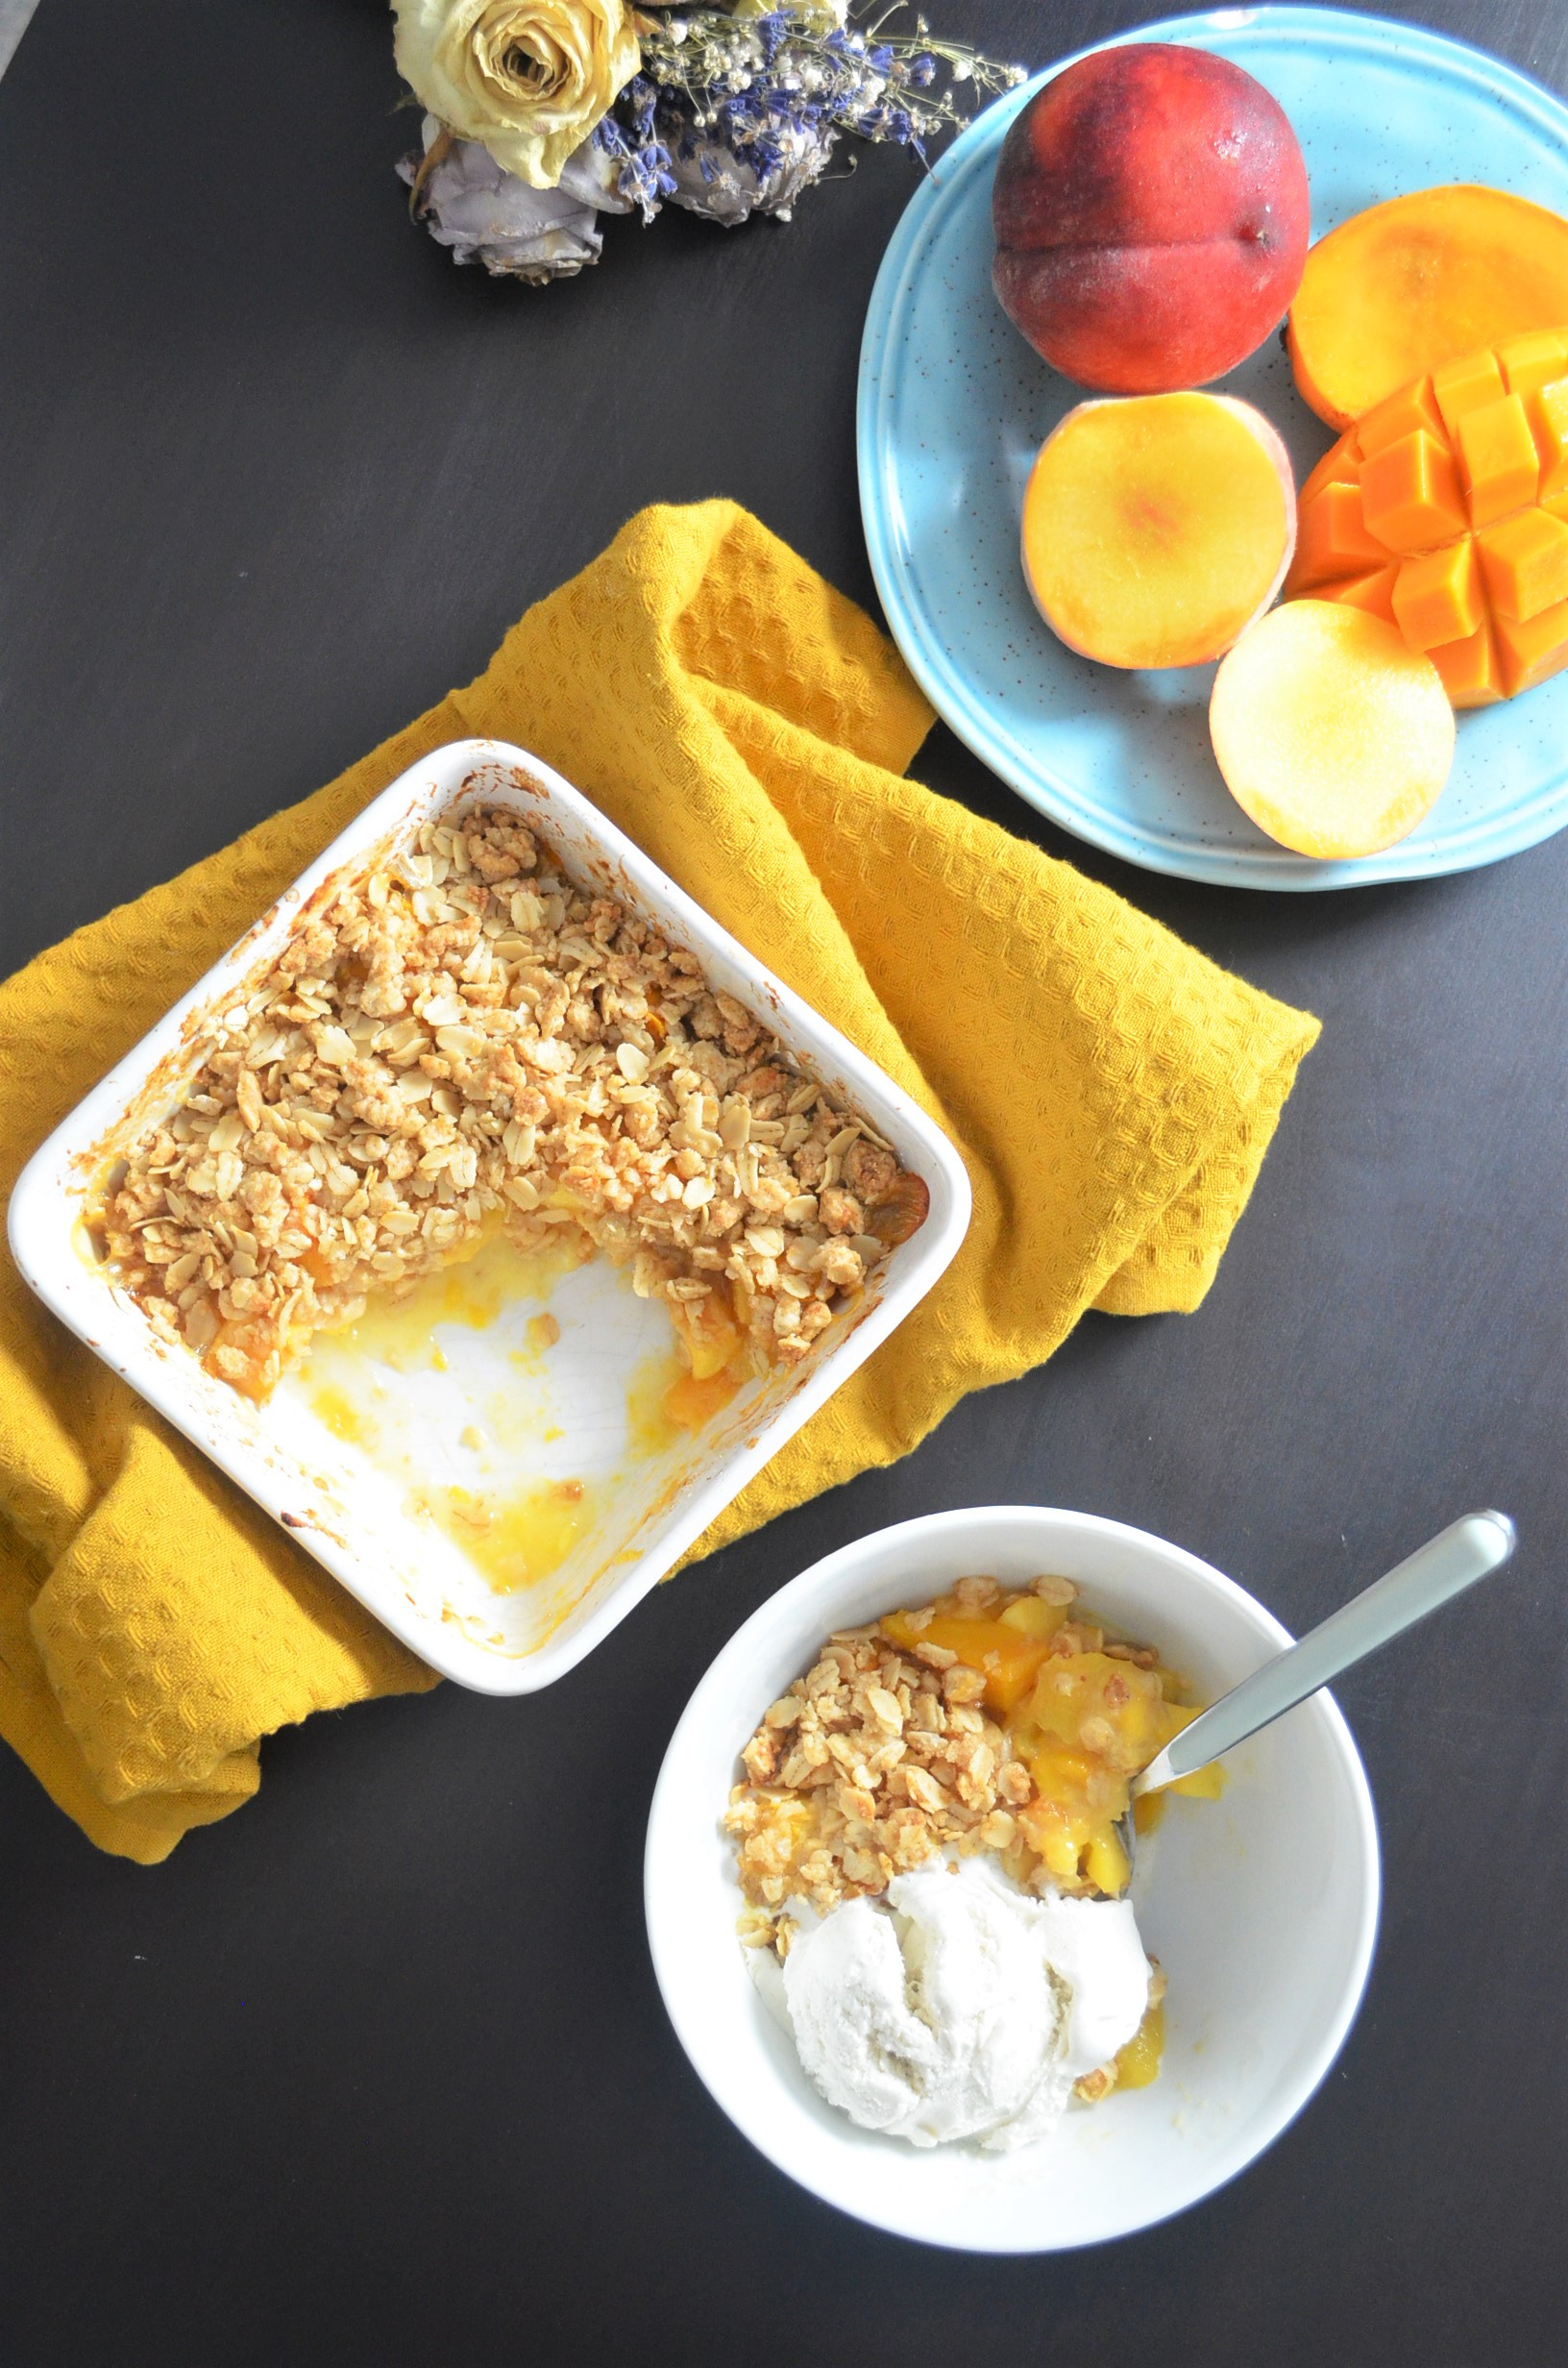 Peach and Mango Crisp